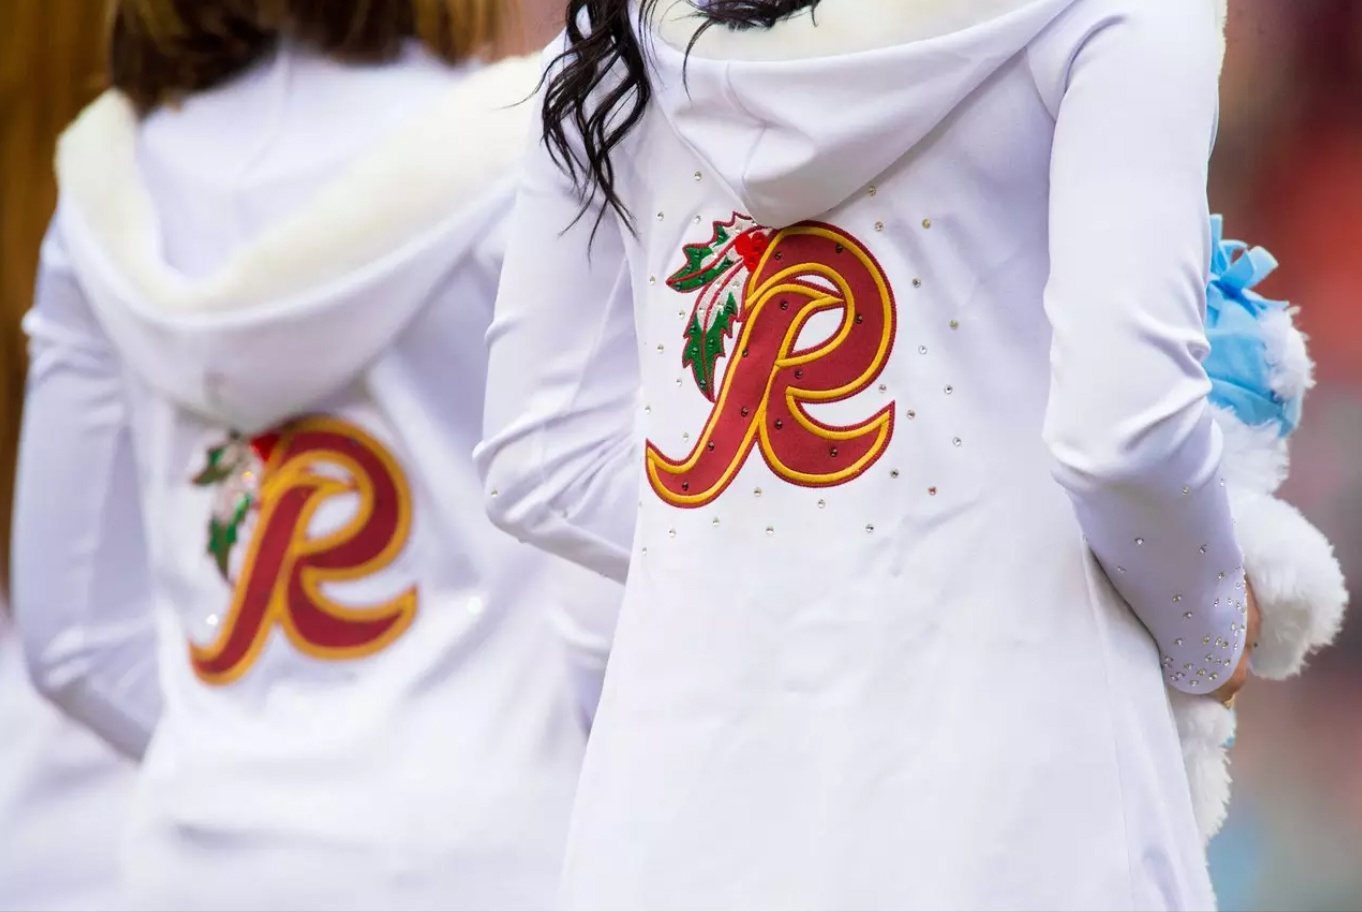 Washington Redskins Cheerleaders Holiday Uniforms